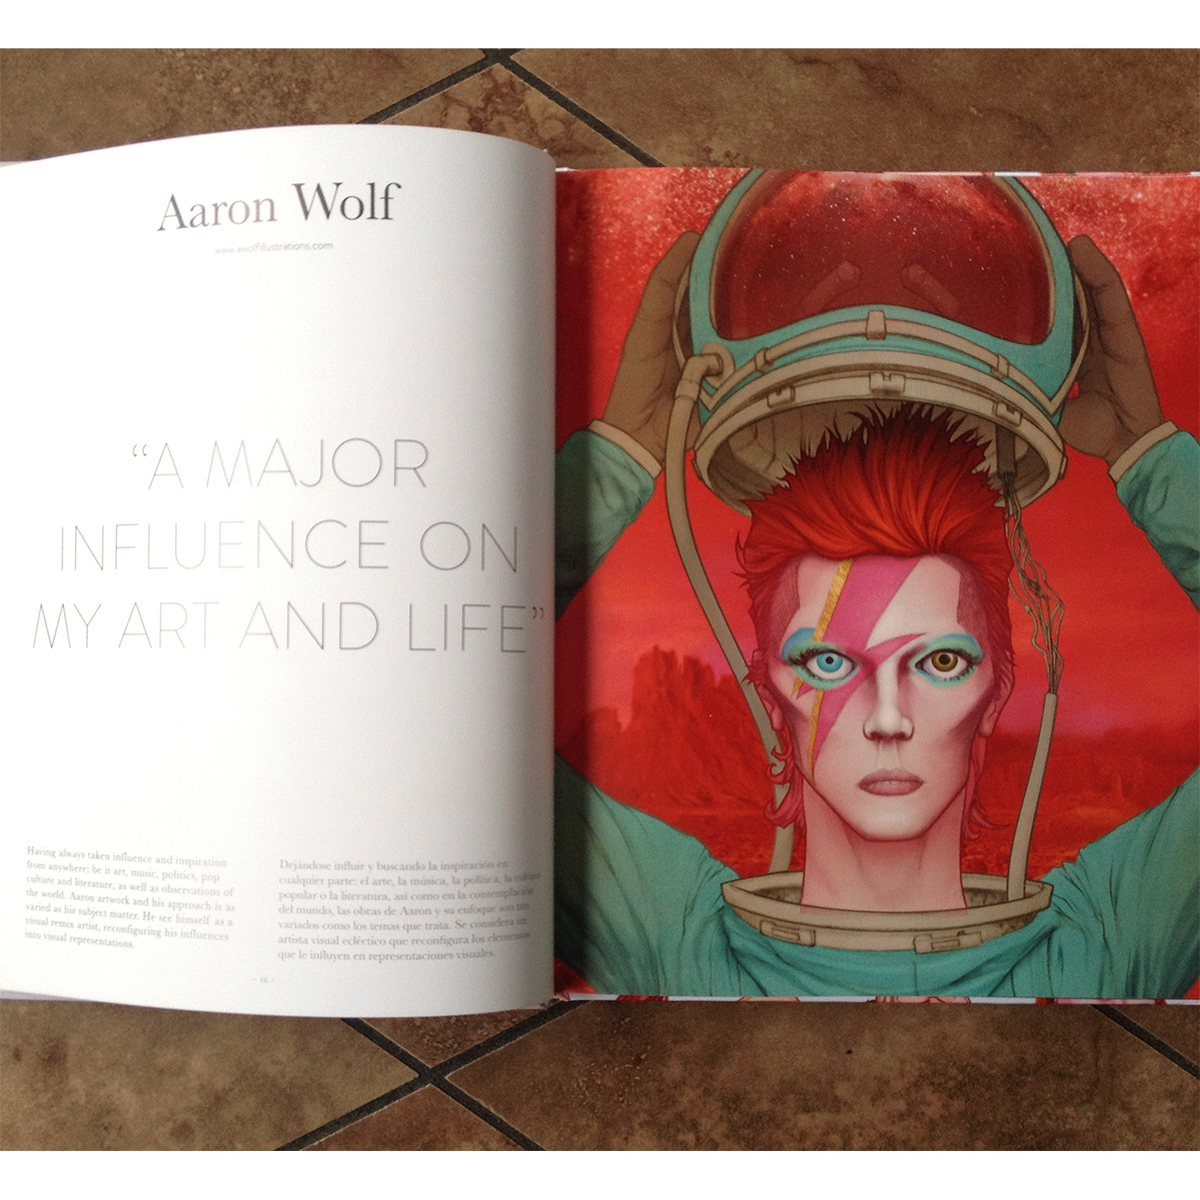 David Bowie: Ziggy Stardust artwork by Aaron Wolf. Artwork featured in Monsa Publishing's David Bowie Tribute